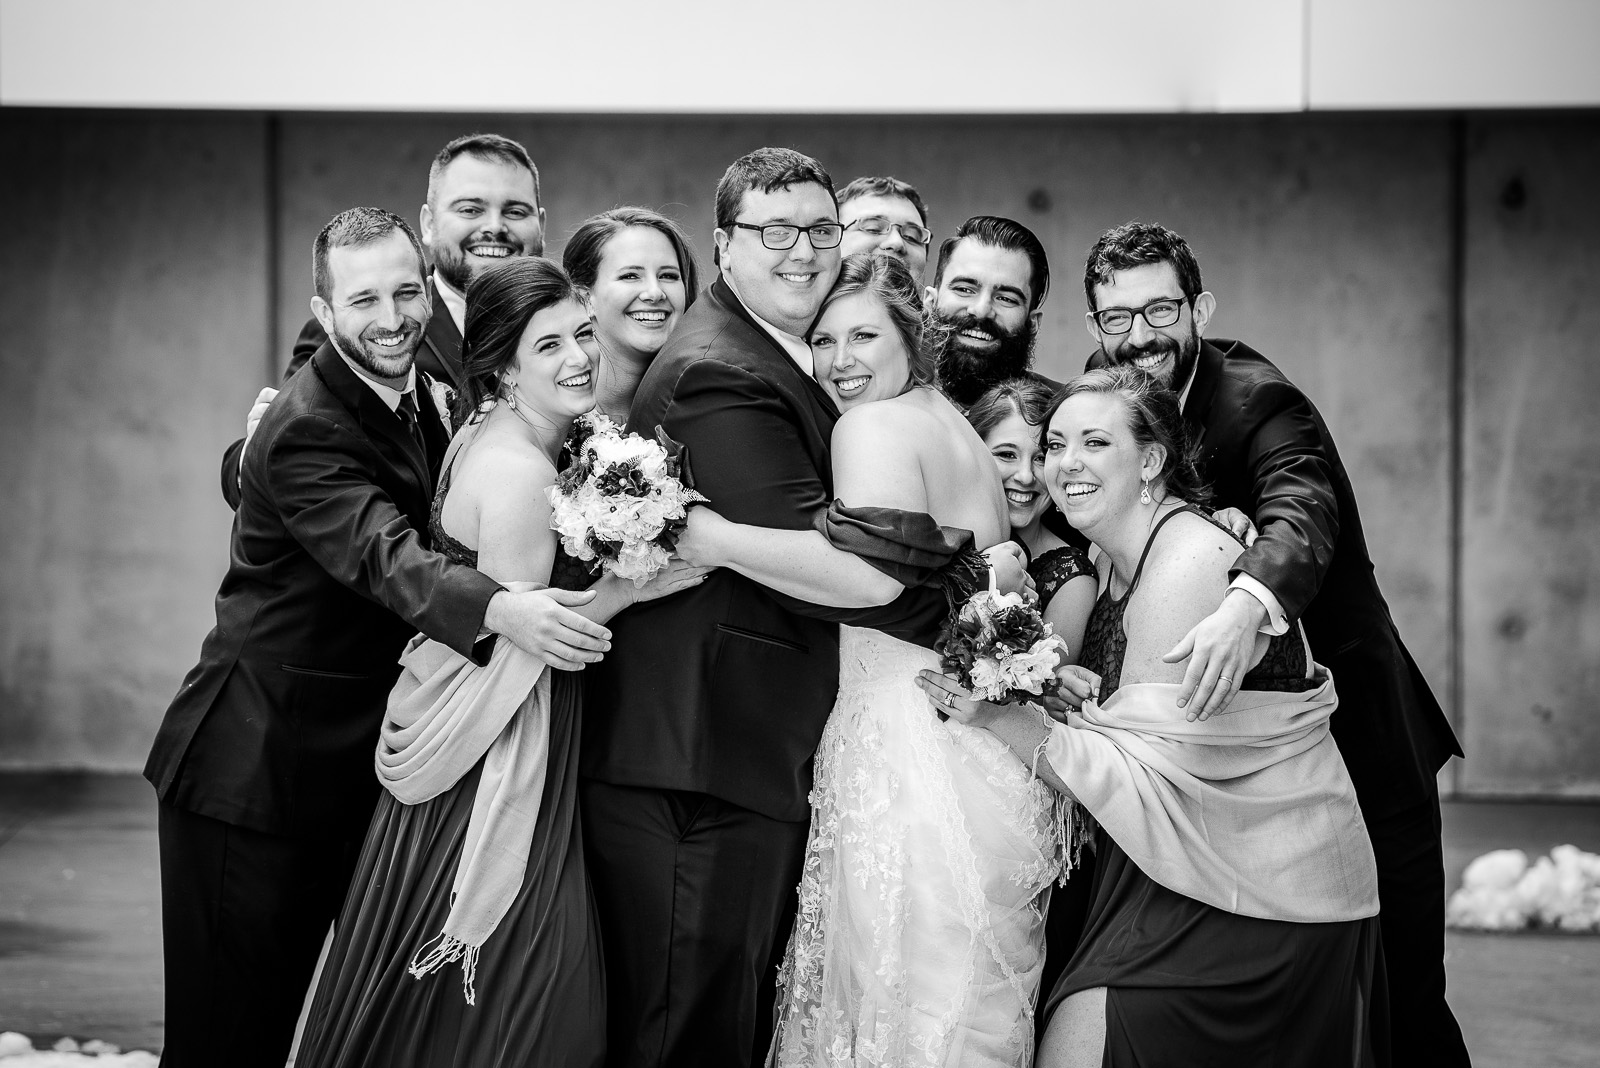 Eric_and_Christy_Photography_Blog_Wedding_Karen_Nick-12